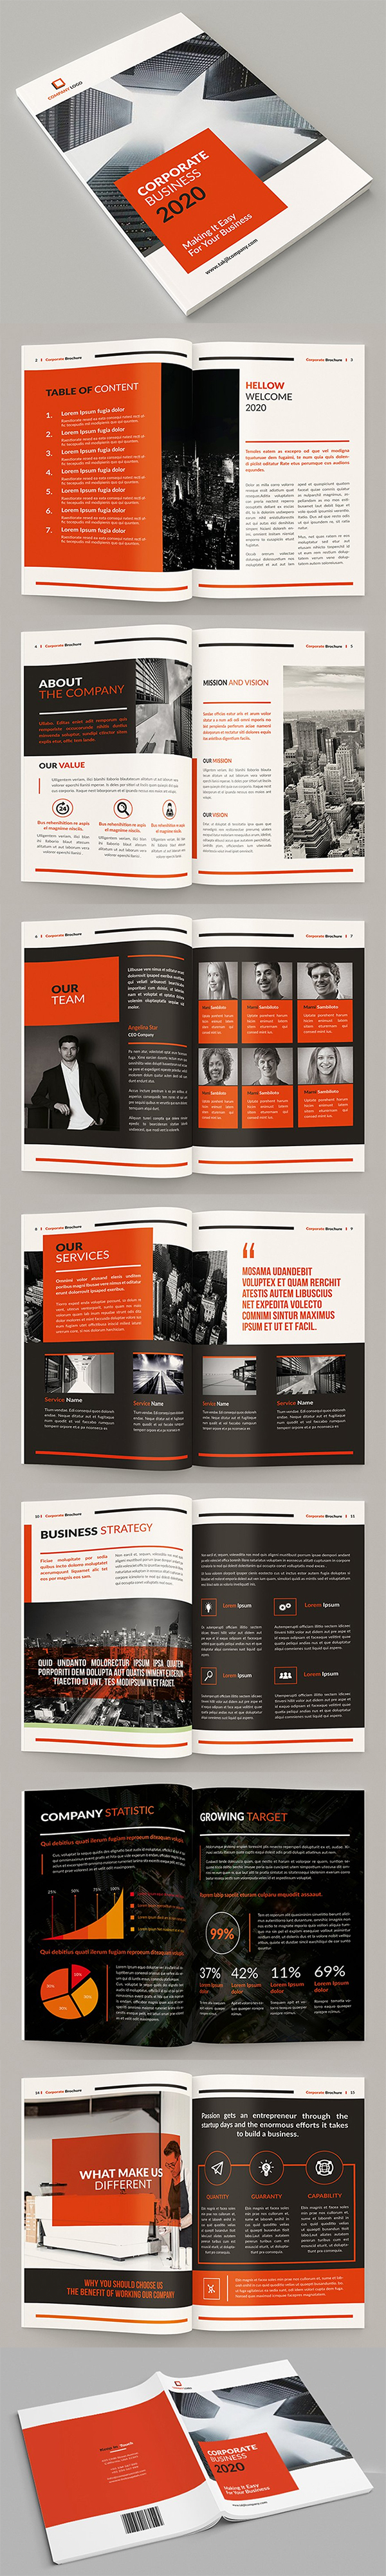 Samawa - A4 Business Brochure Template